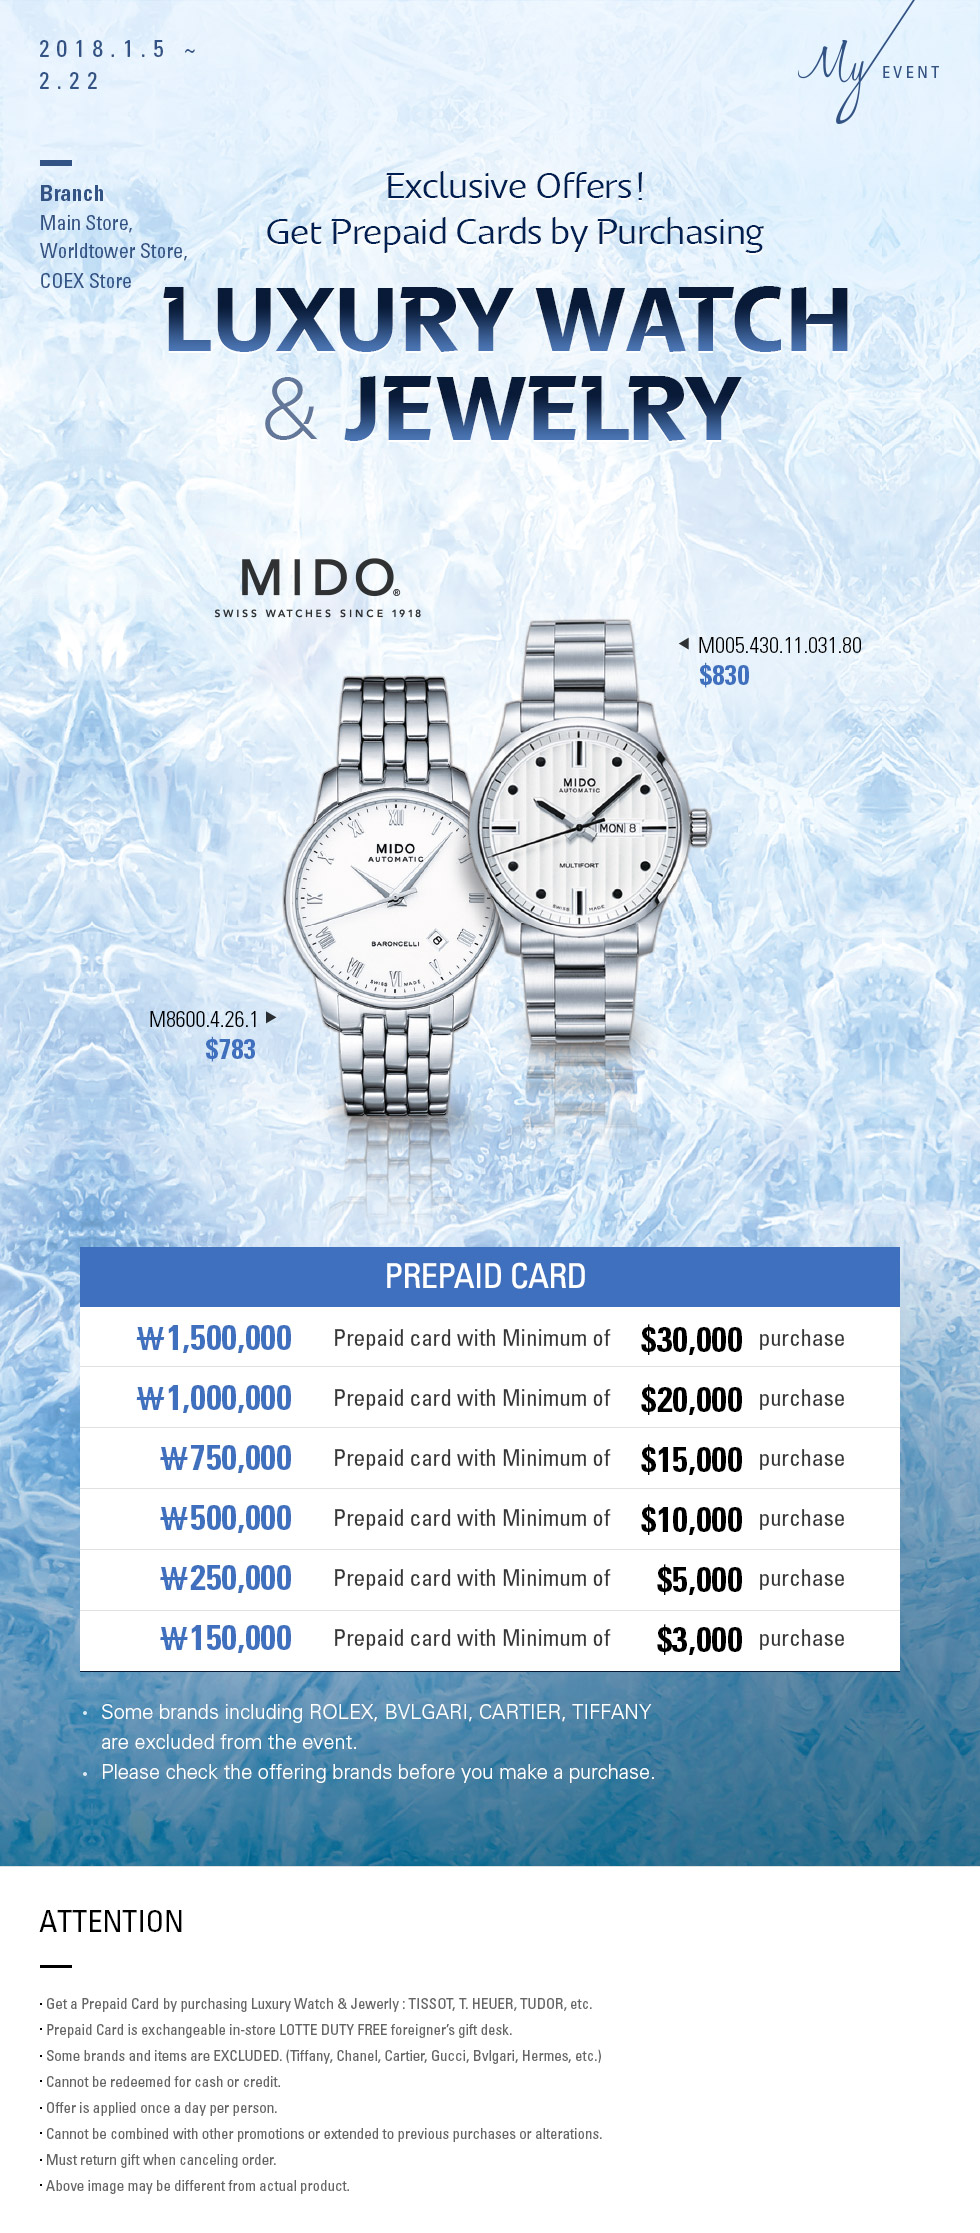 Exclusive Offers! Get Prepaid Cards by Purchasing Luxury Watch & Jewelry